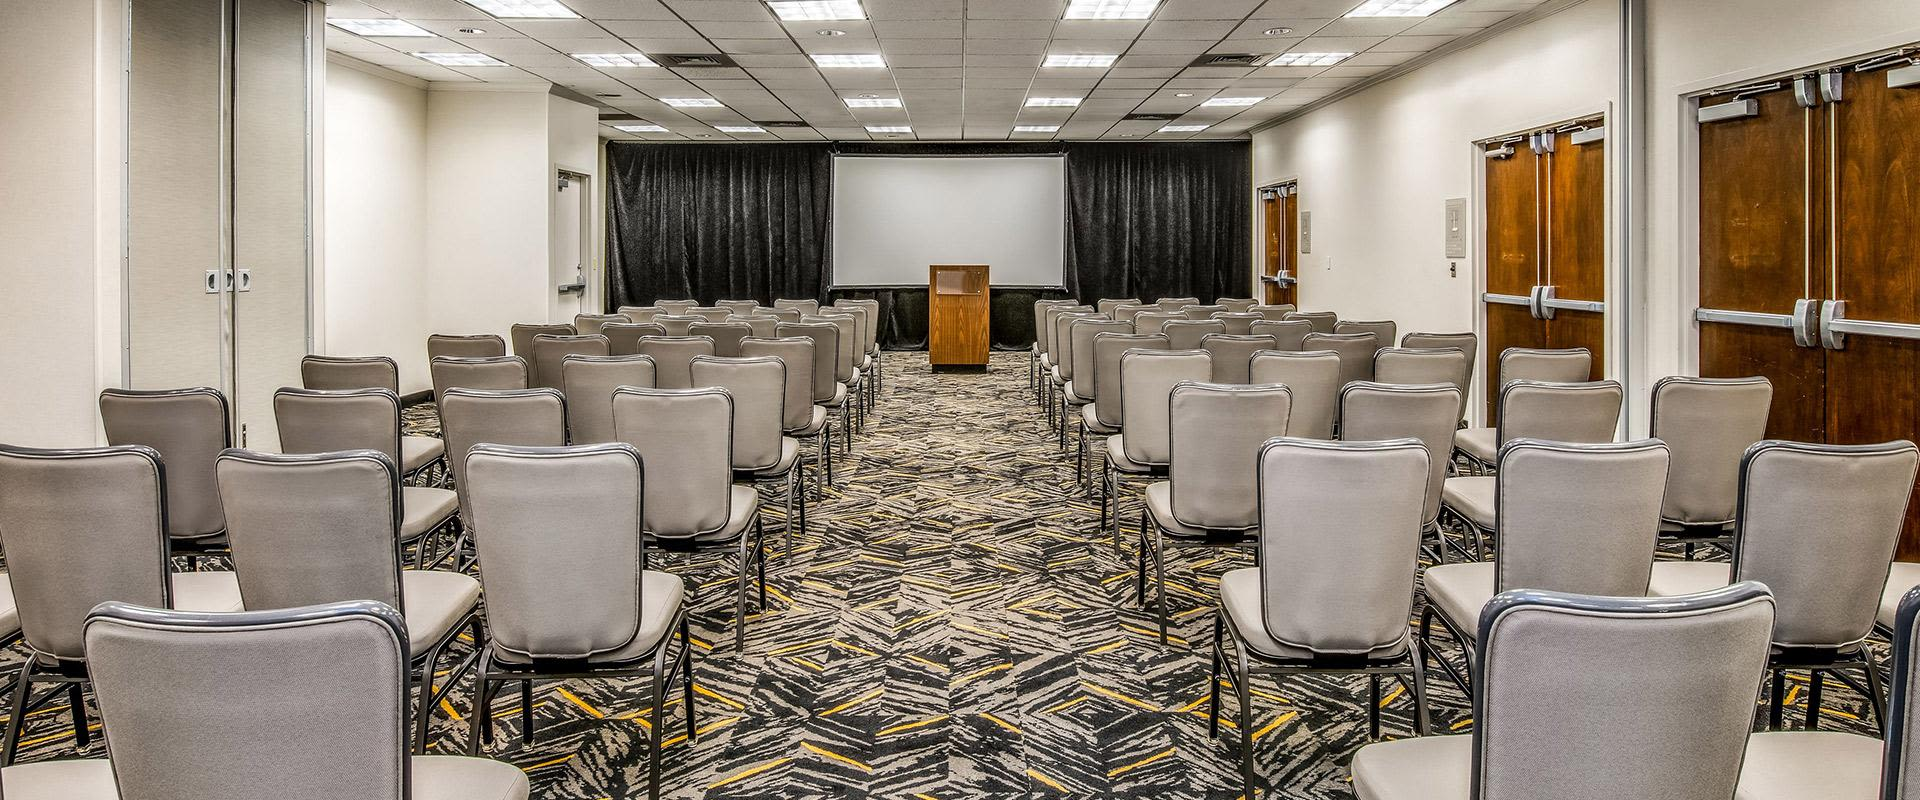 Denver Meeting Room With Podium